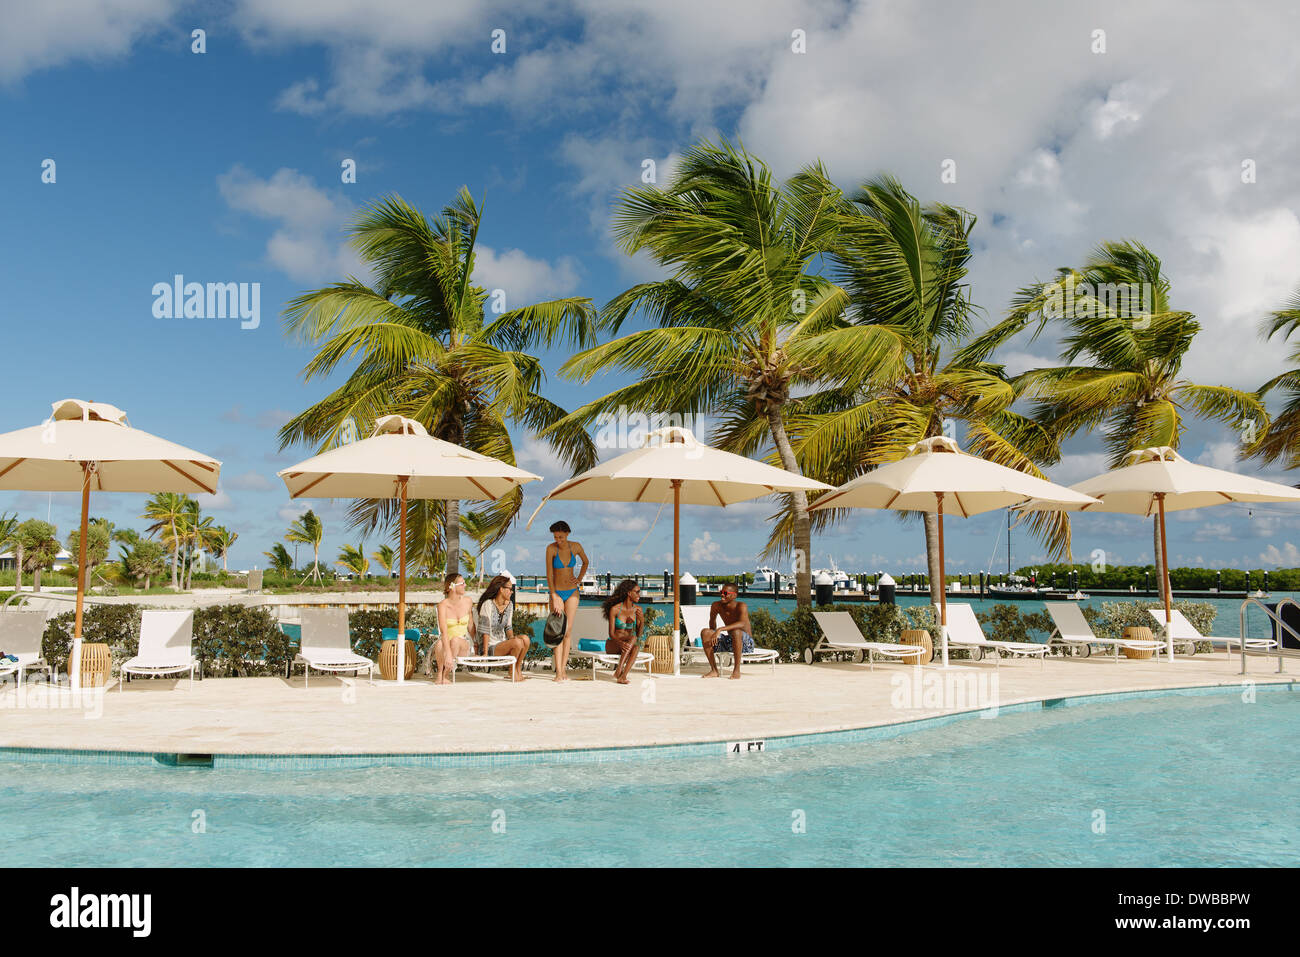 Group of young adults sunbathing by the pool, Providenciales, Turks and Caicos Islands, Caribbean Stock Photo